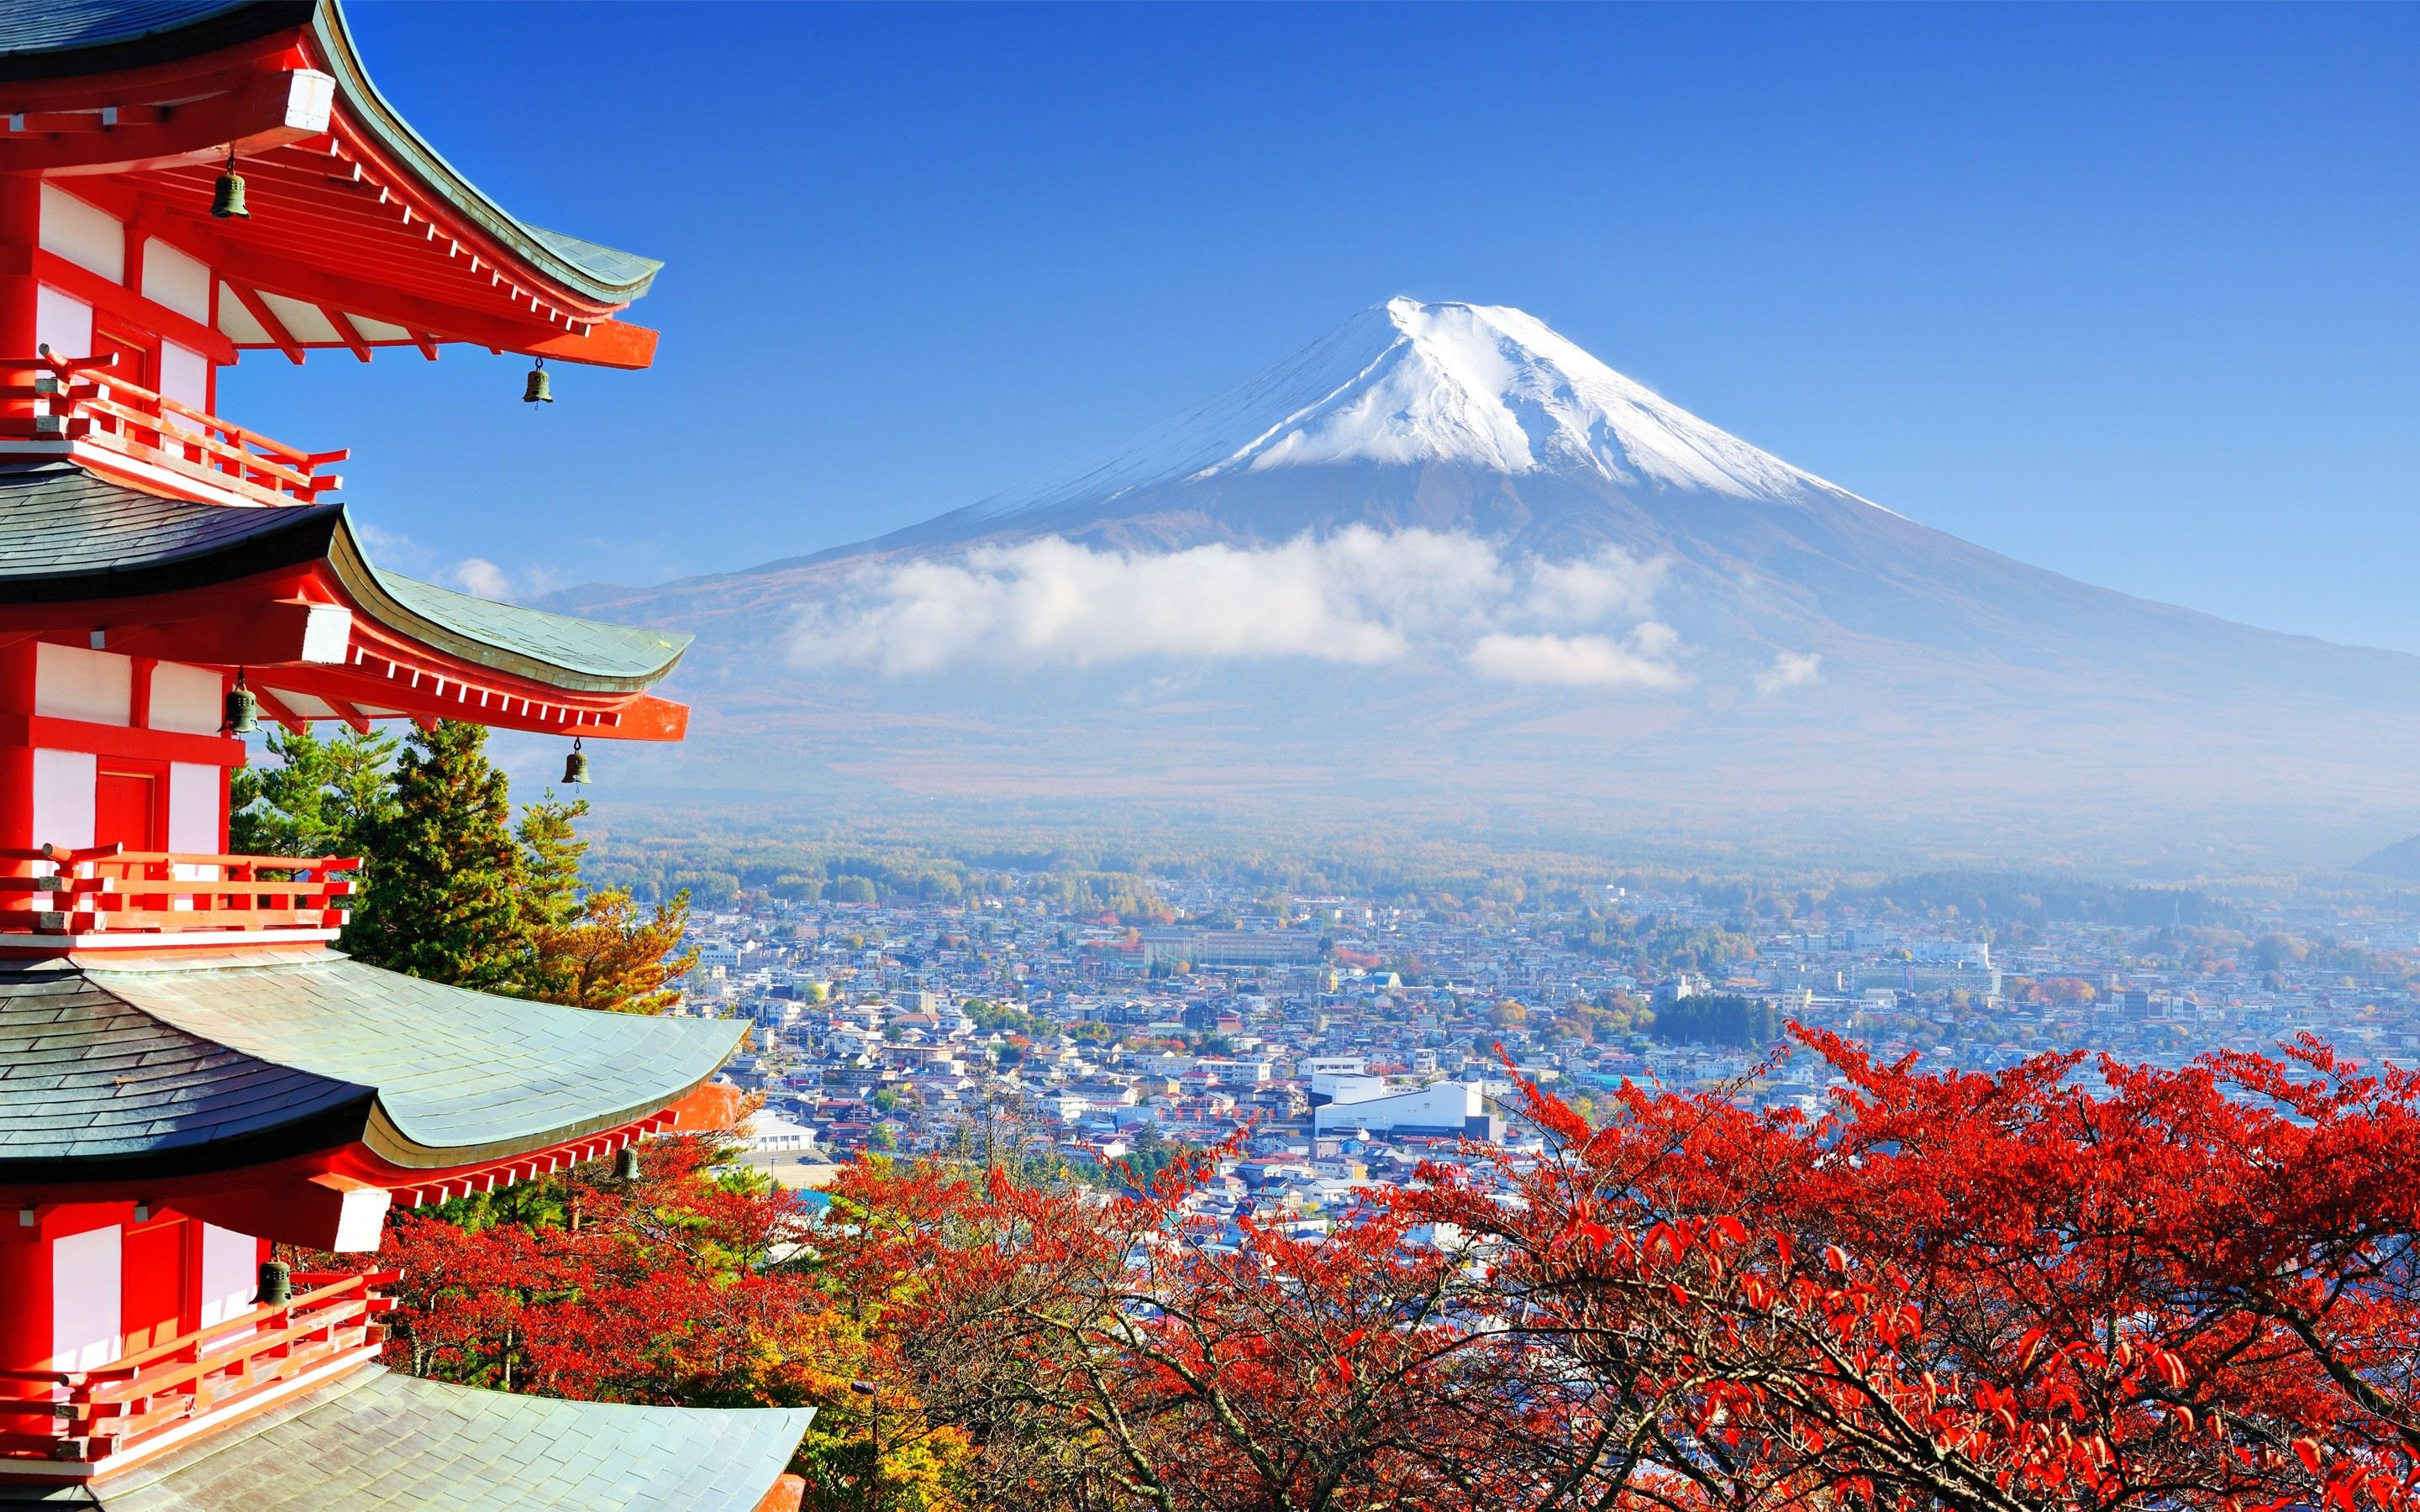 Mount Fuji Mountain Hd Nature 4k Wallpapers Images